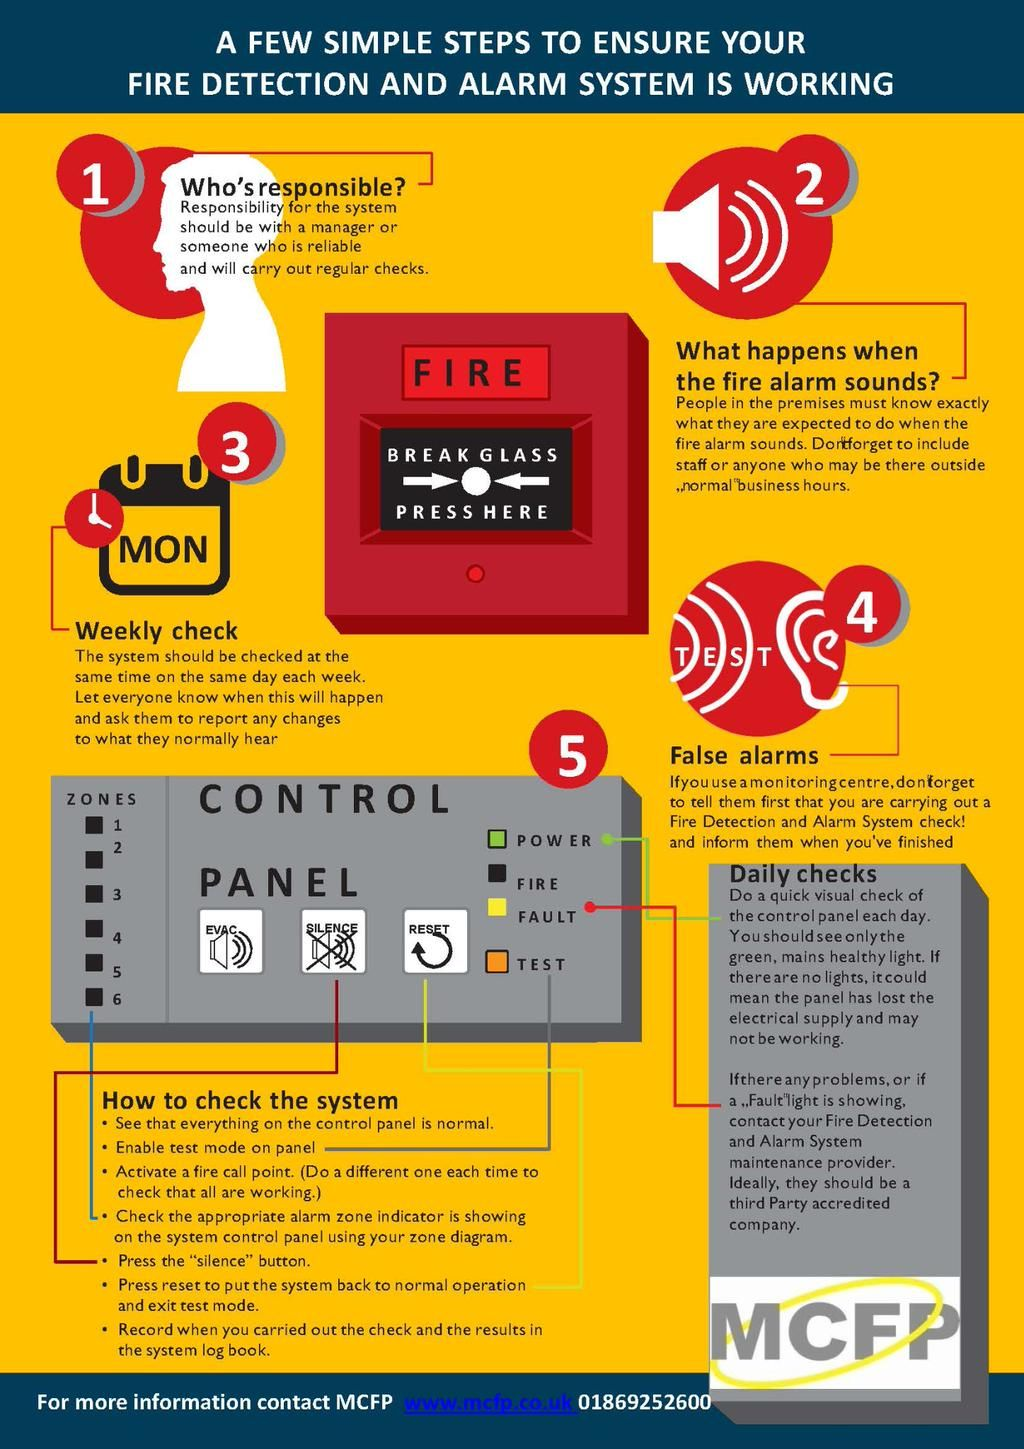 M C Fire Protection on Alarm system, Home security tips